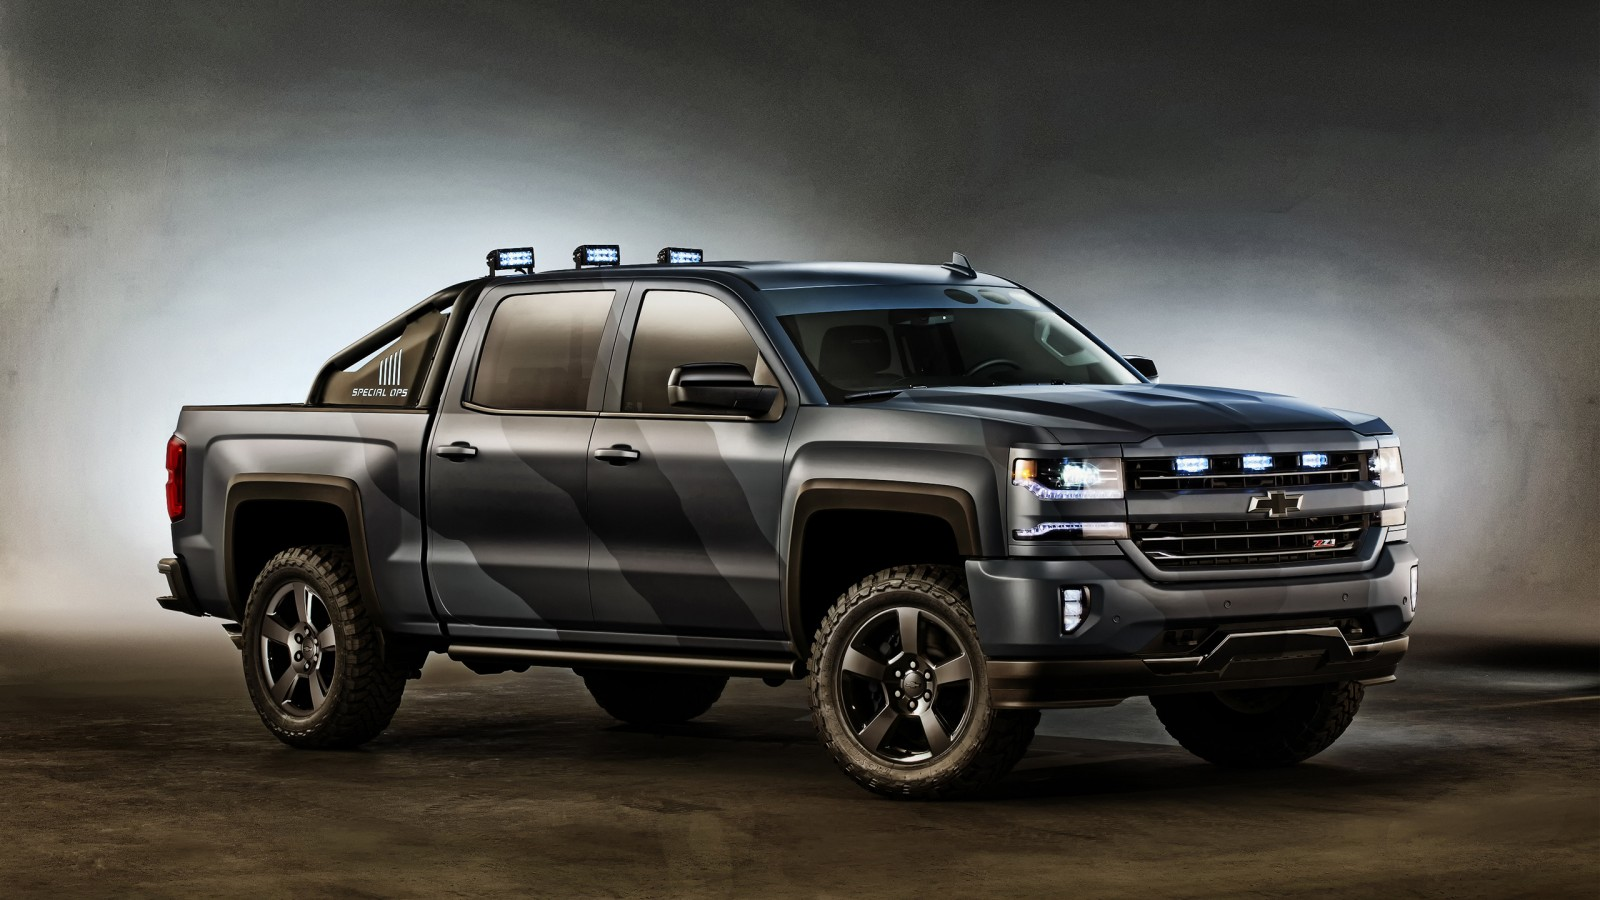 2015 chevrolet silverado concept wallpaper hd car wallpapers id 6054. Black Bedroom Furniture Sets. Home Design Ideas